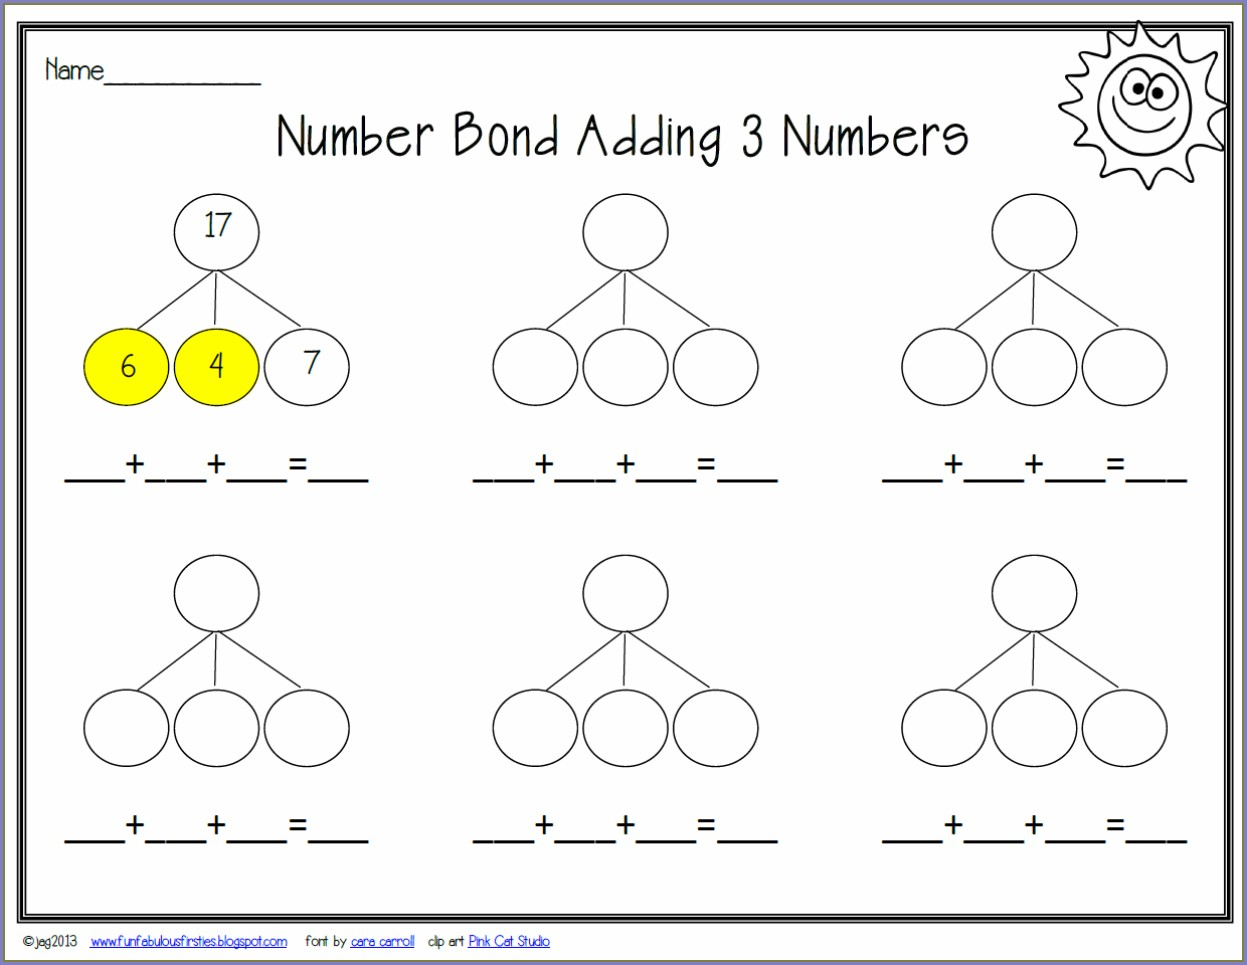 Printable Blank Number Bond Worksheet